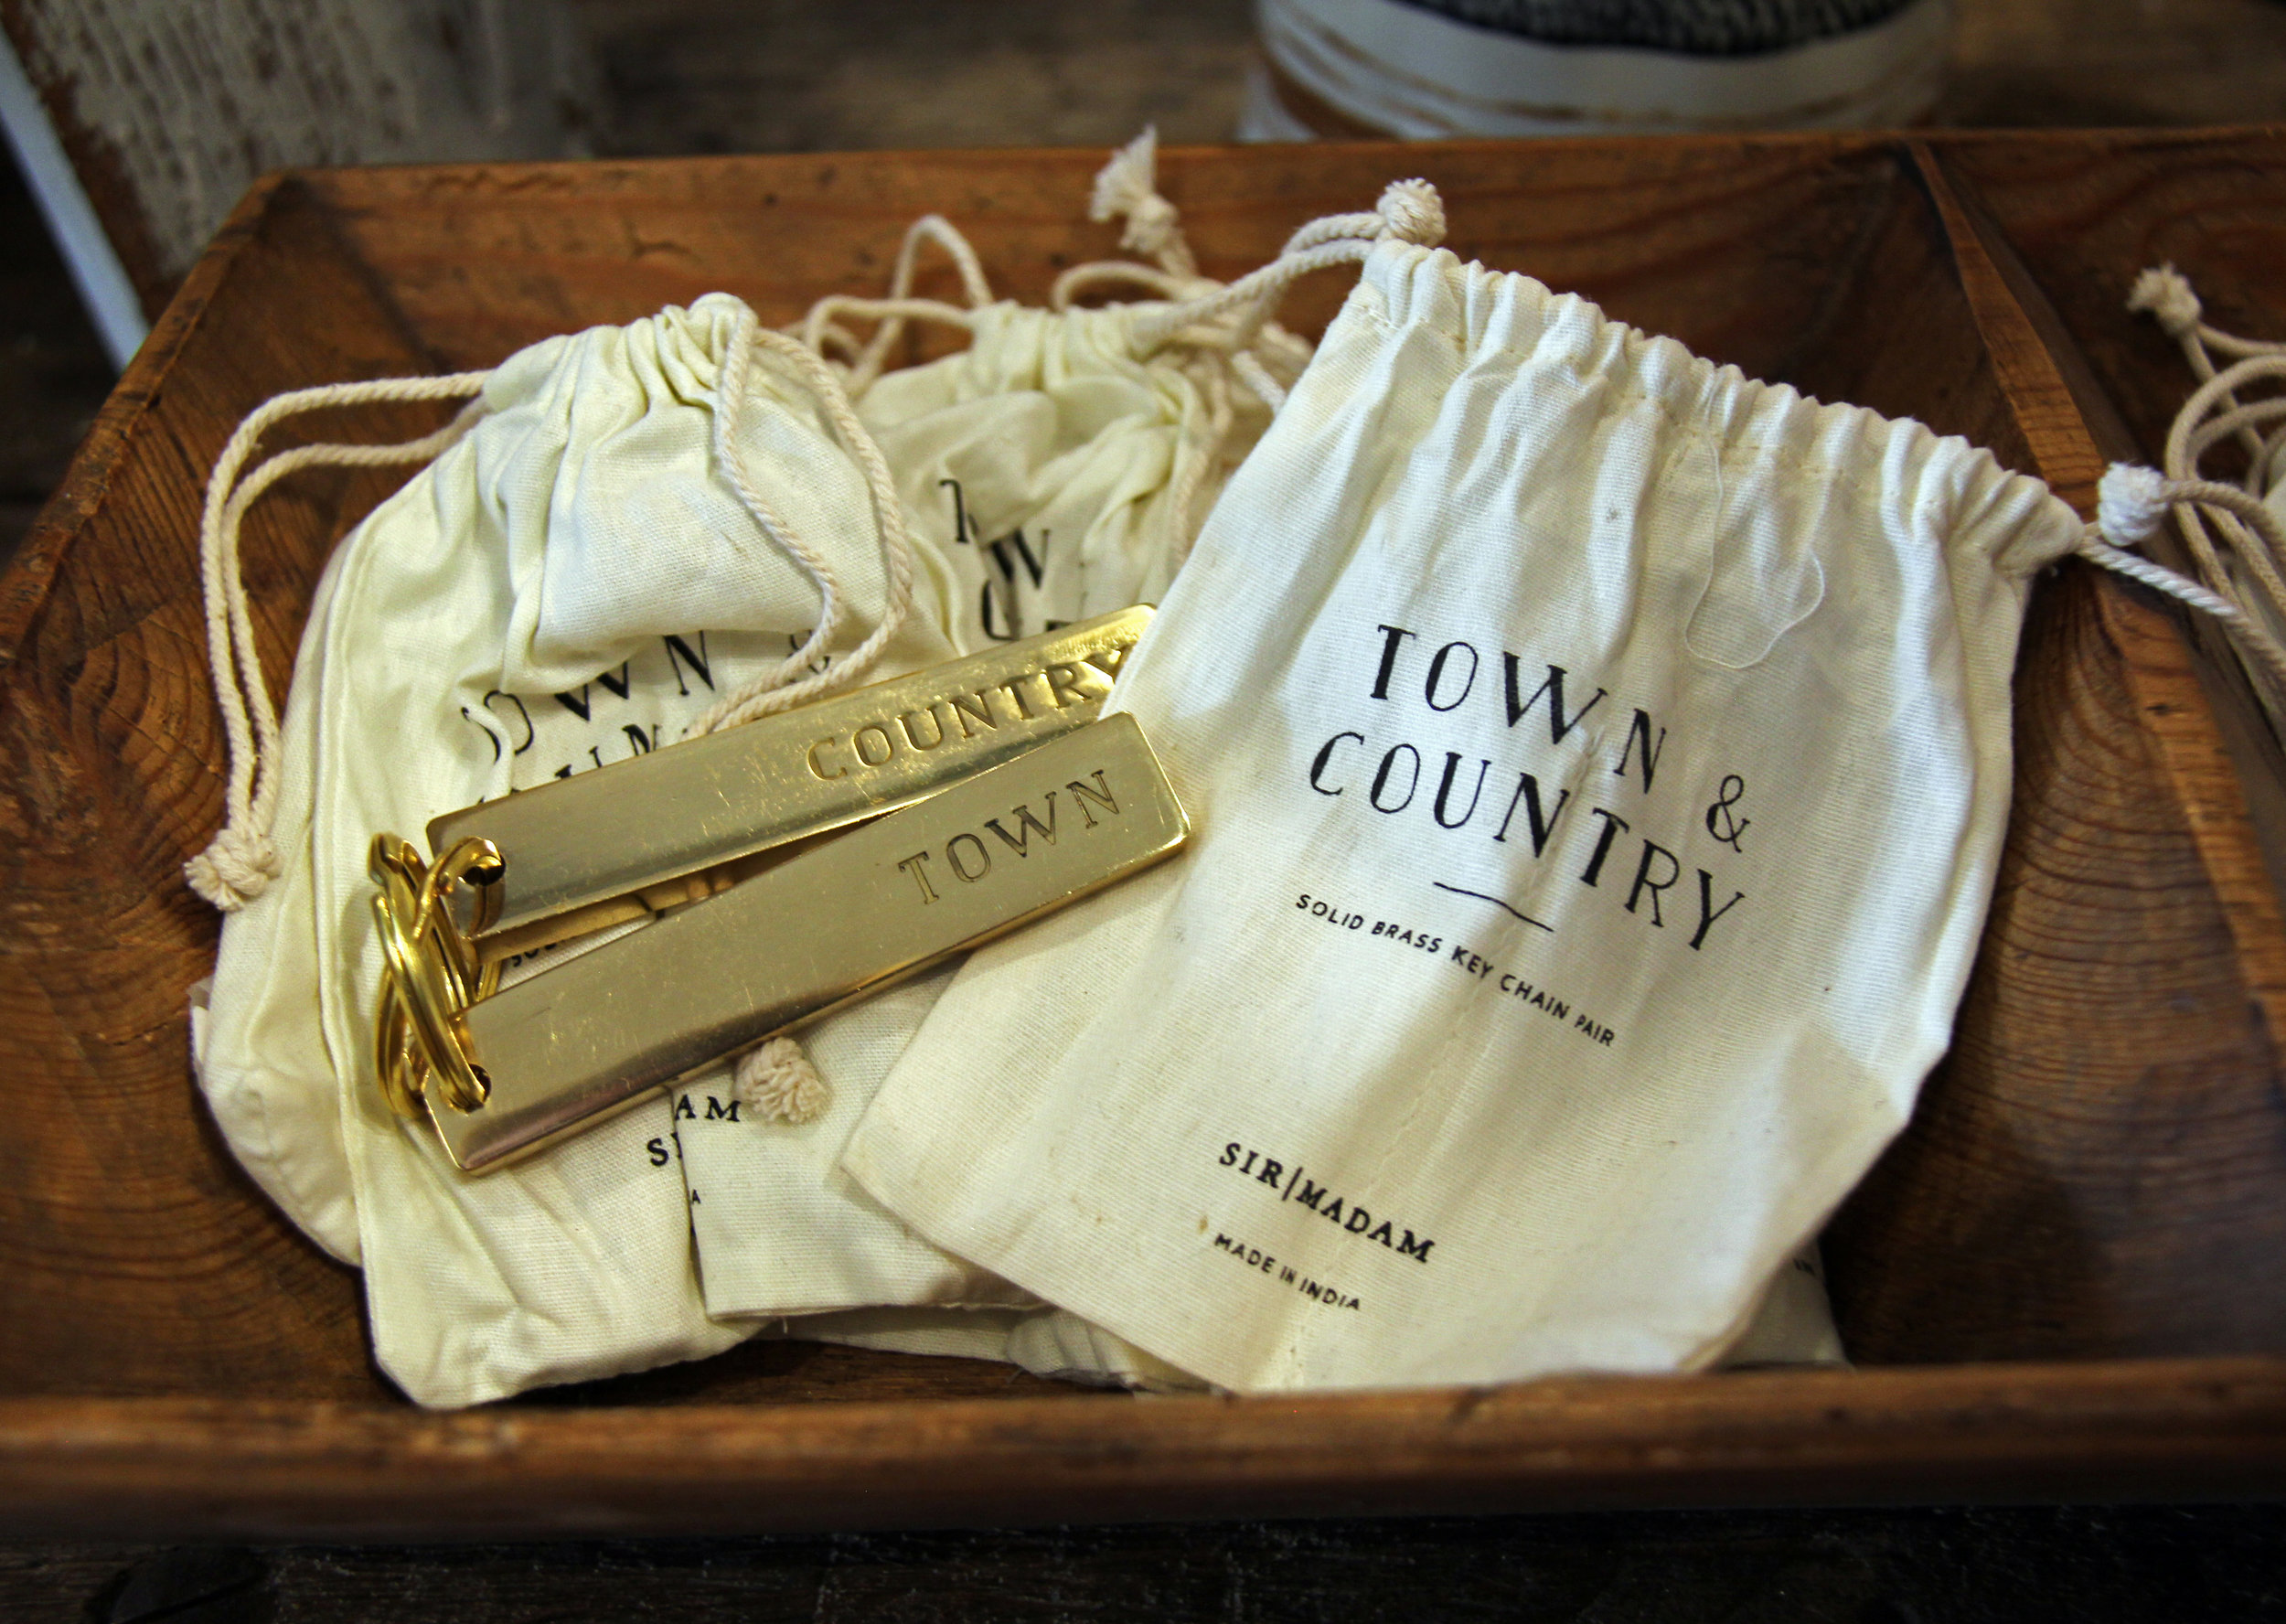 Brass Town & Country keychains